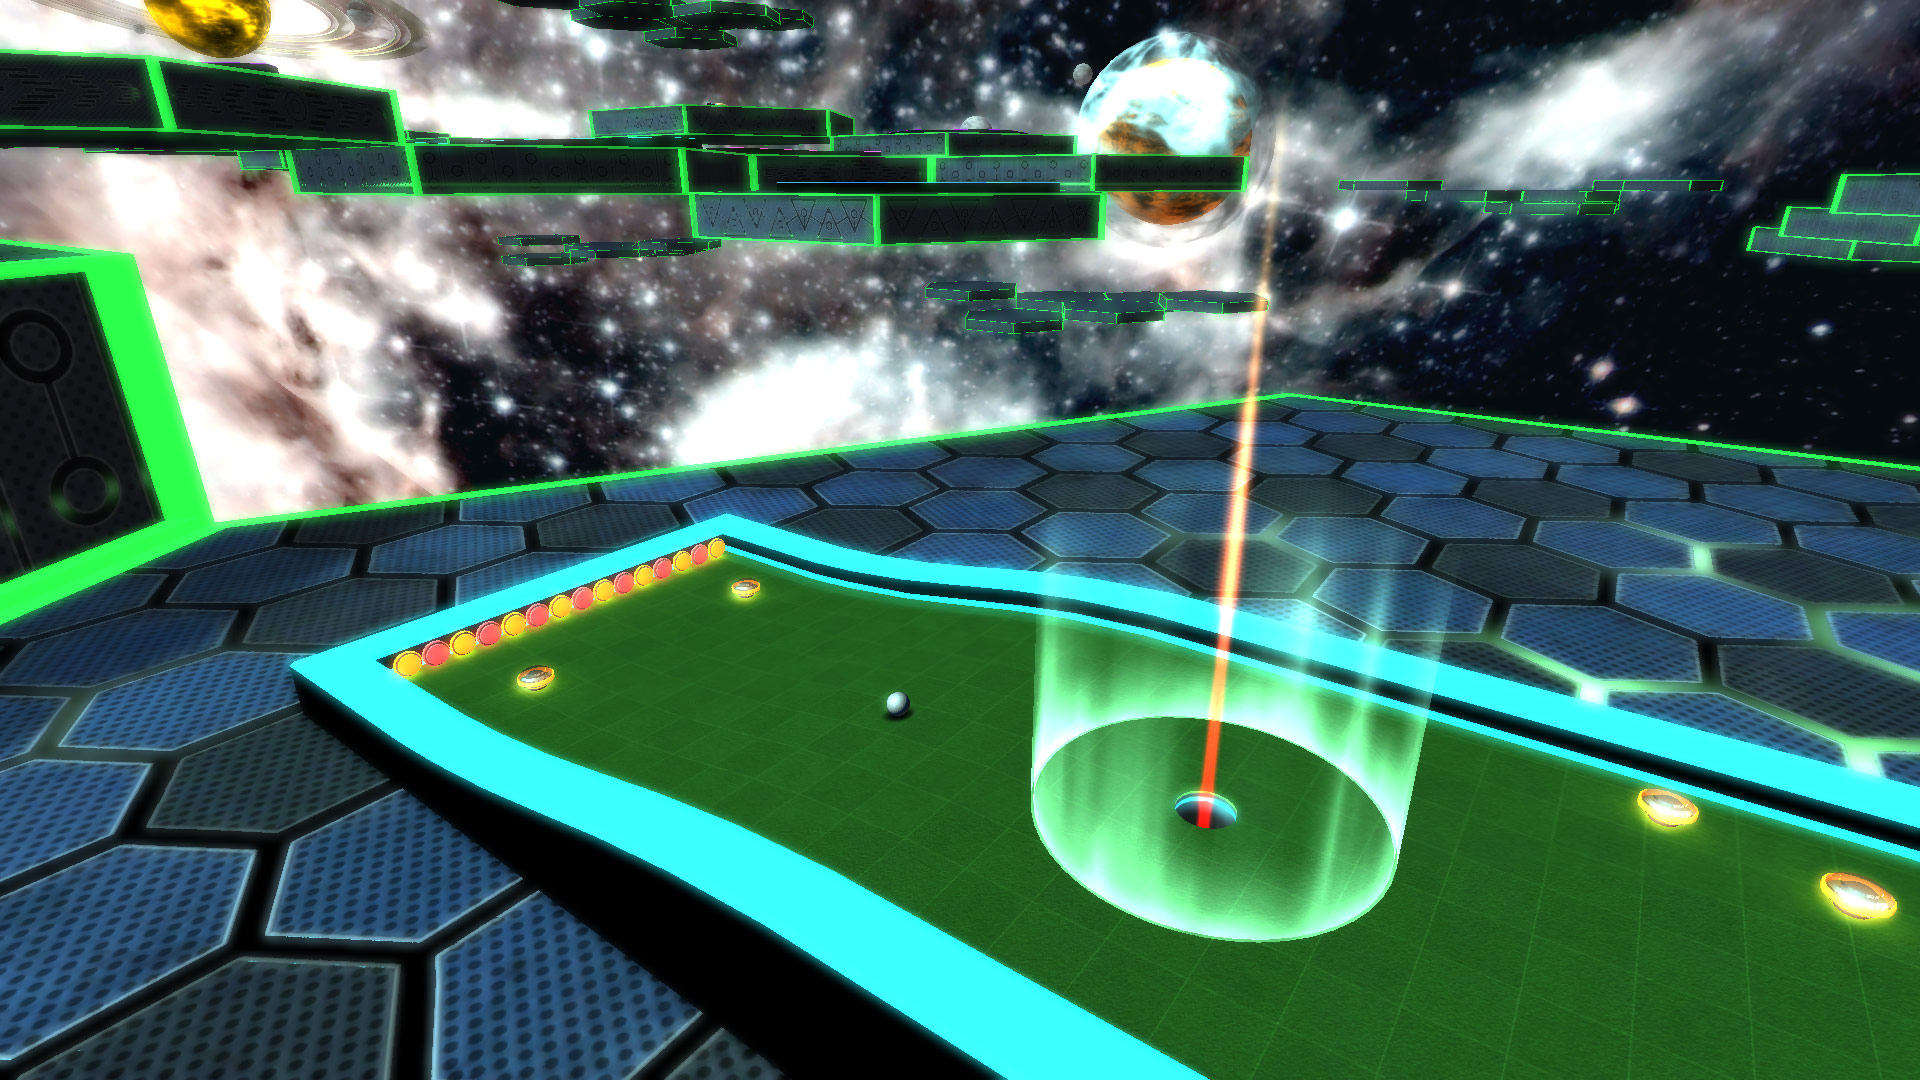 Responsible for Art Direction, contribution to game design, level concept. Created shaders for all mini-putt holes; created skybox art; lighting, shader, environment and particle effects; GUI design and implementation. Rendered in Unity.